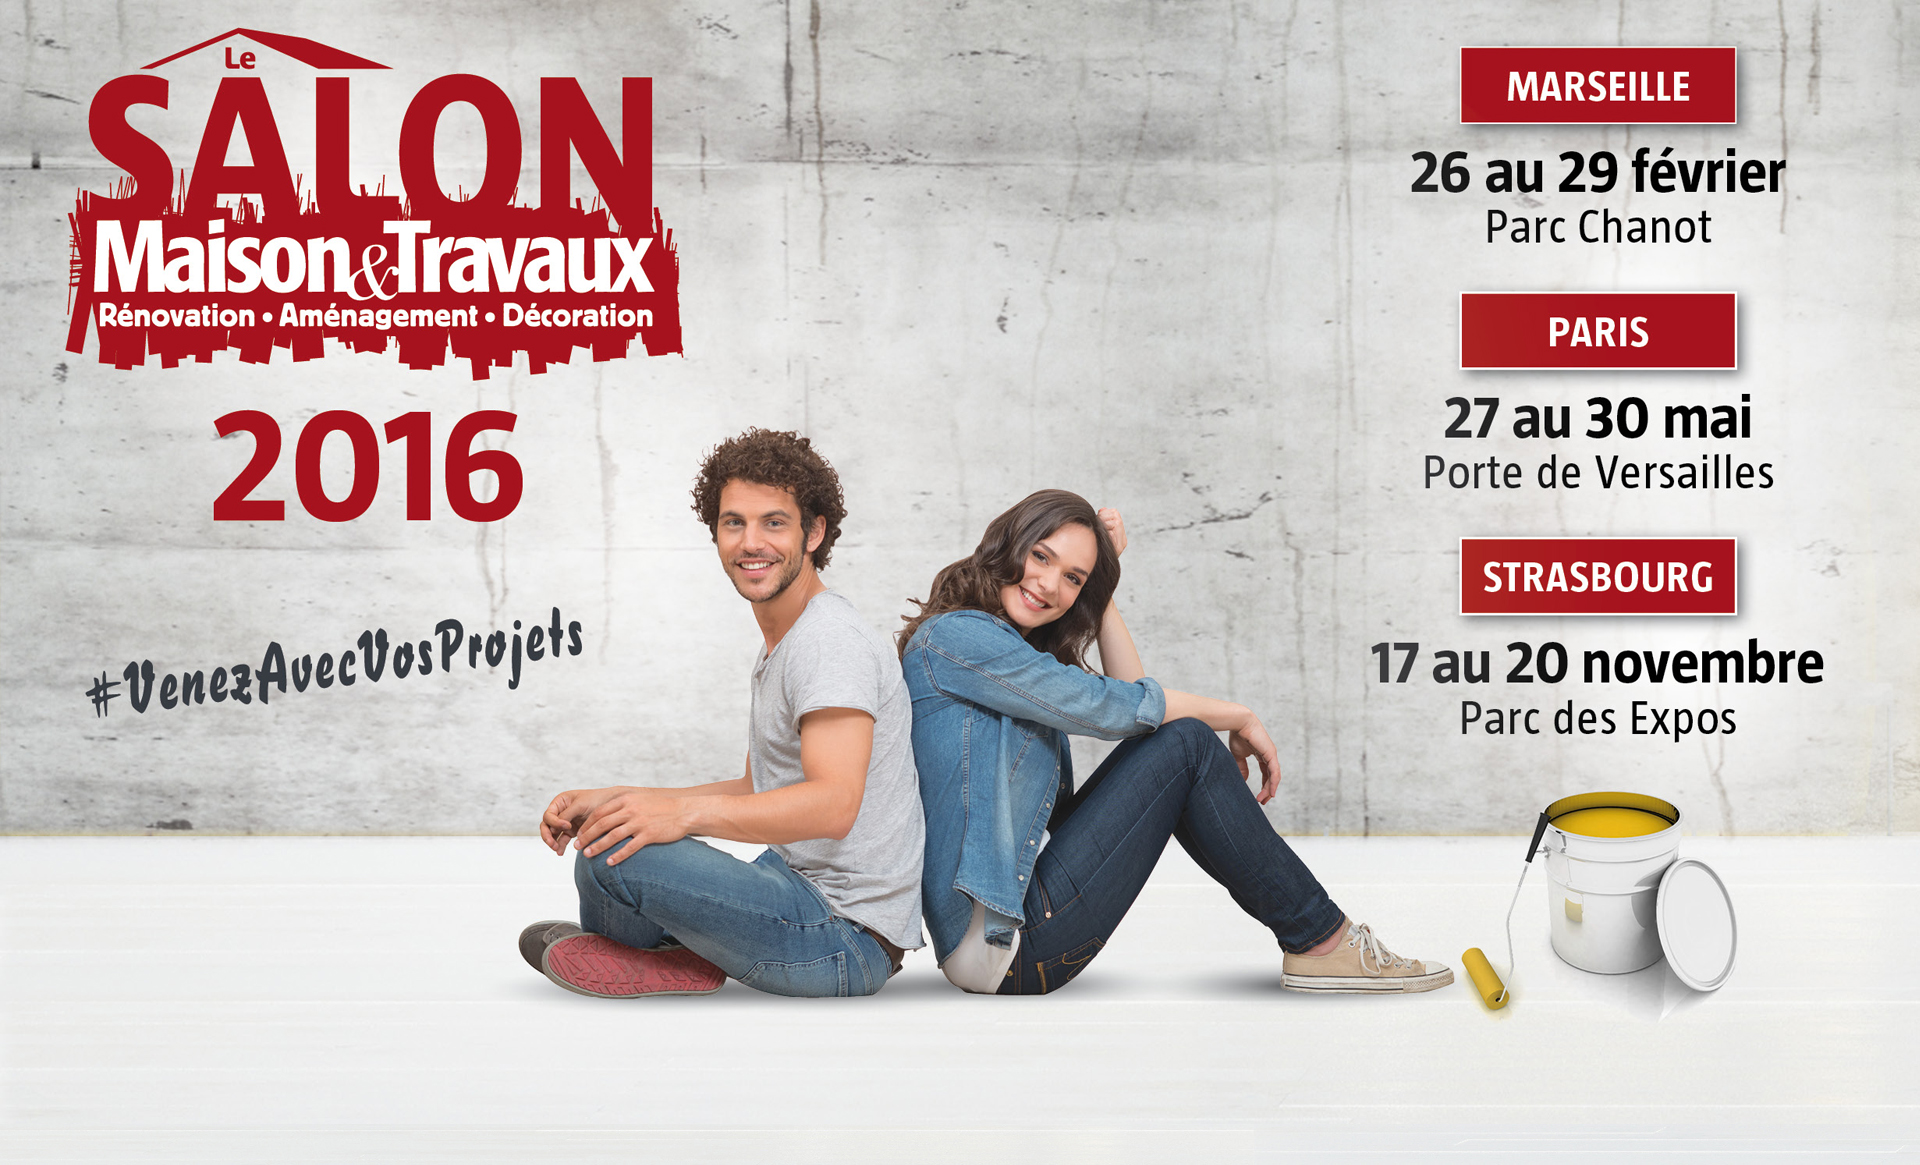 Le salon Maison & Travaux